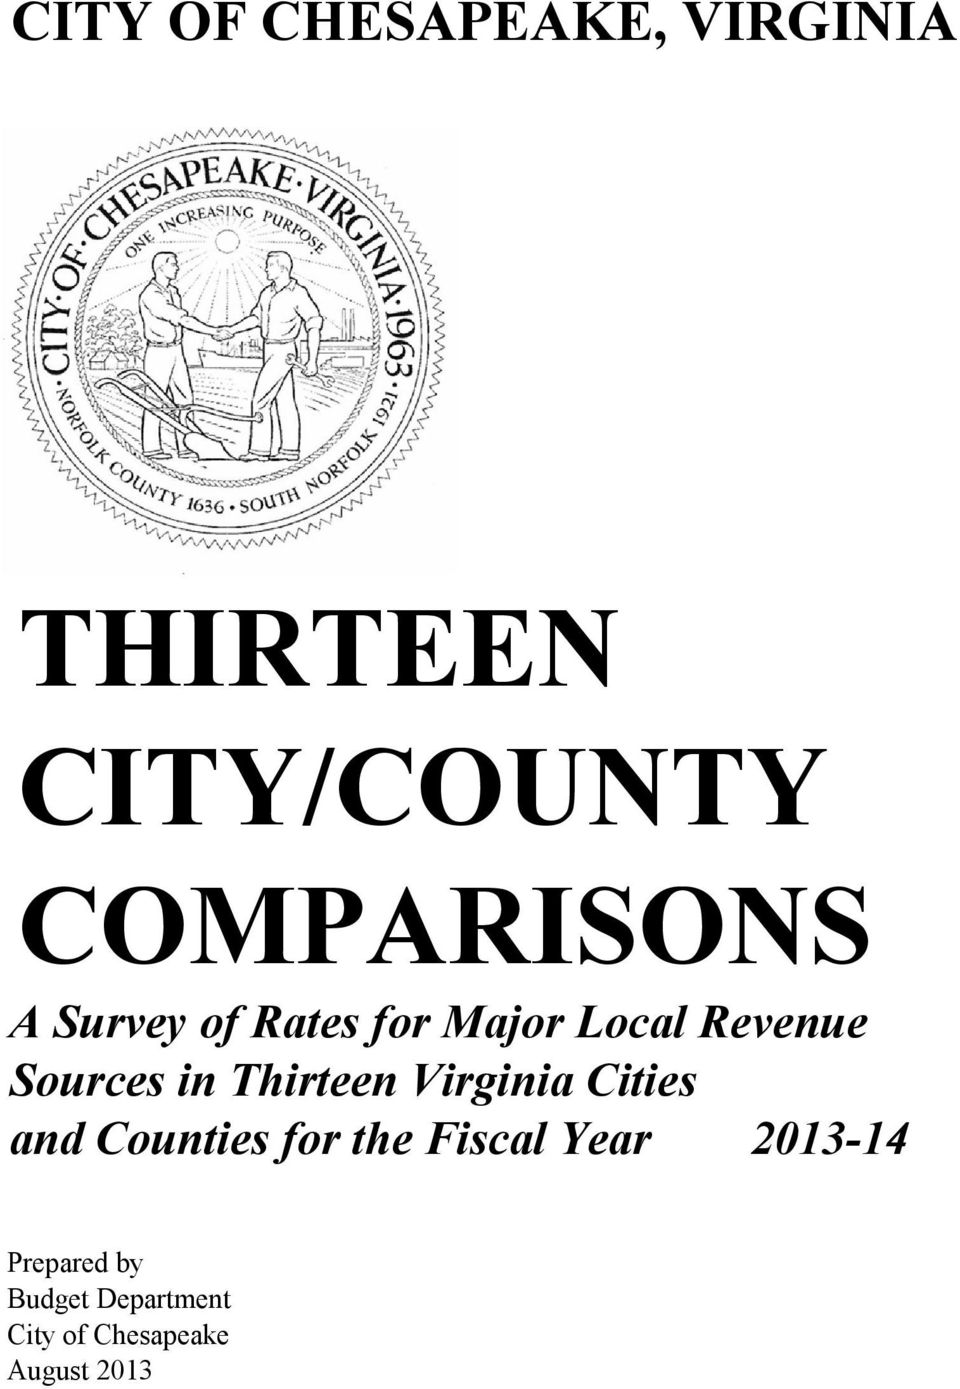 and Counties for the Fiscal Year 2013-14 REVISION